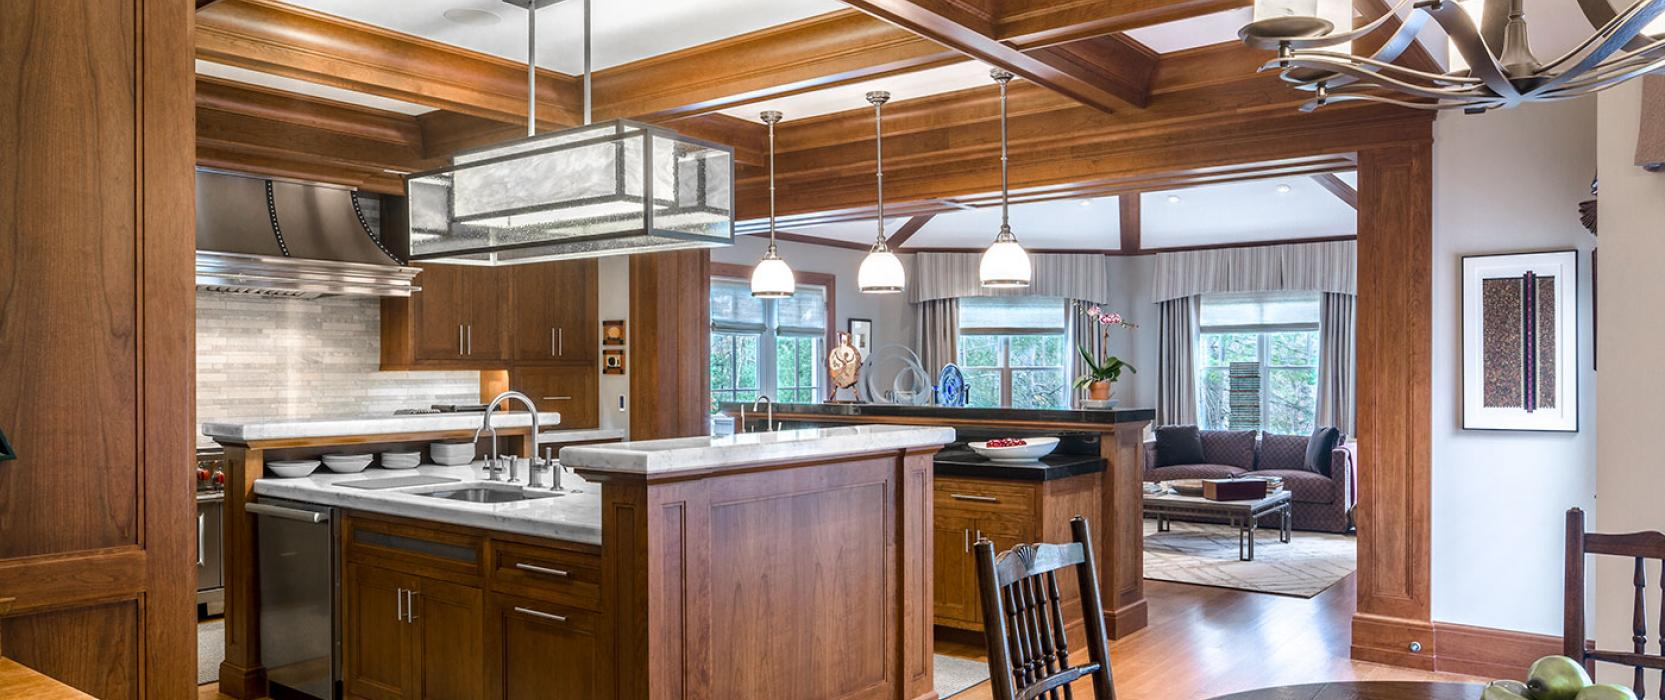 Custom kitchen with multiple islands and cherry woodwork by Fallon Custom Homes & Renovations